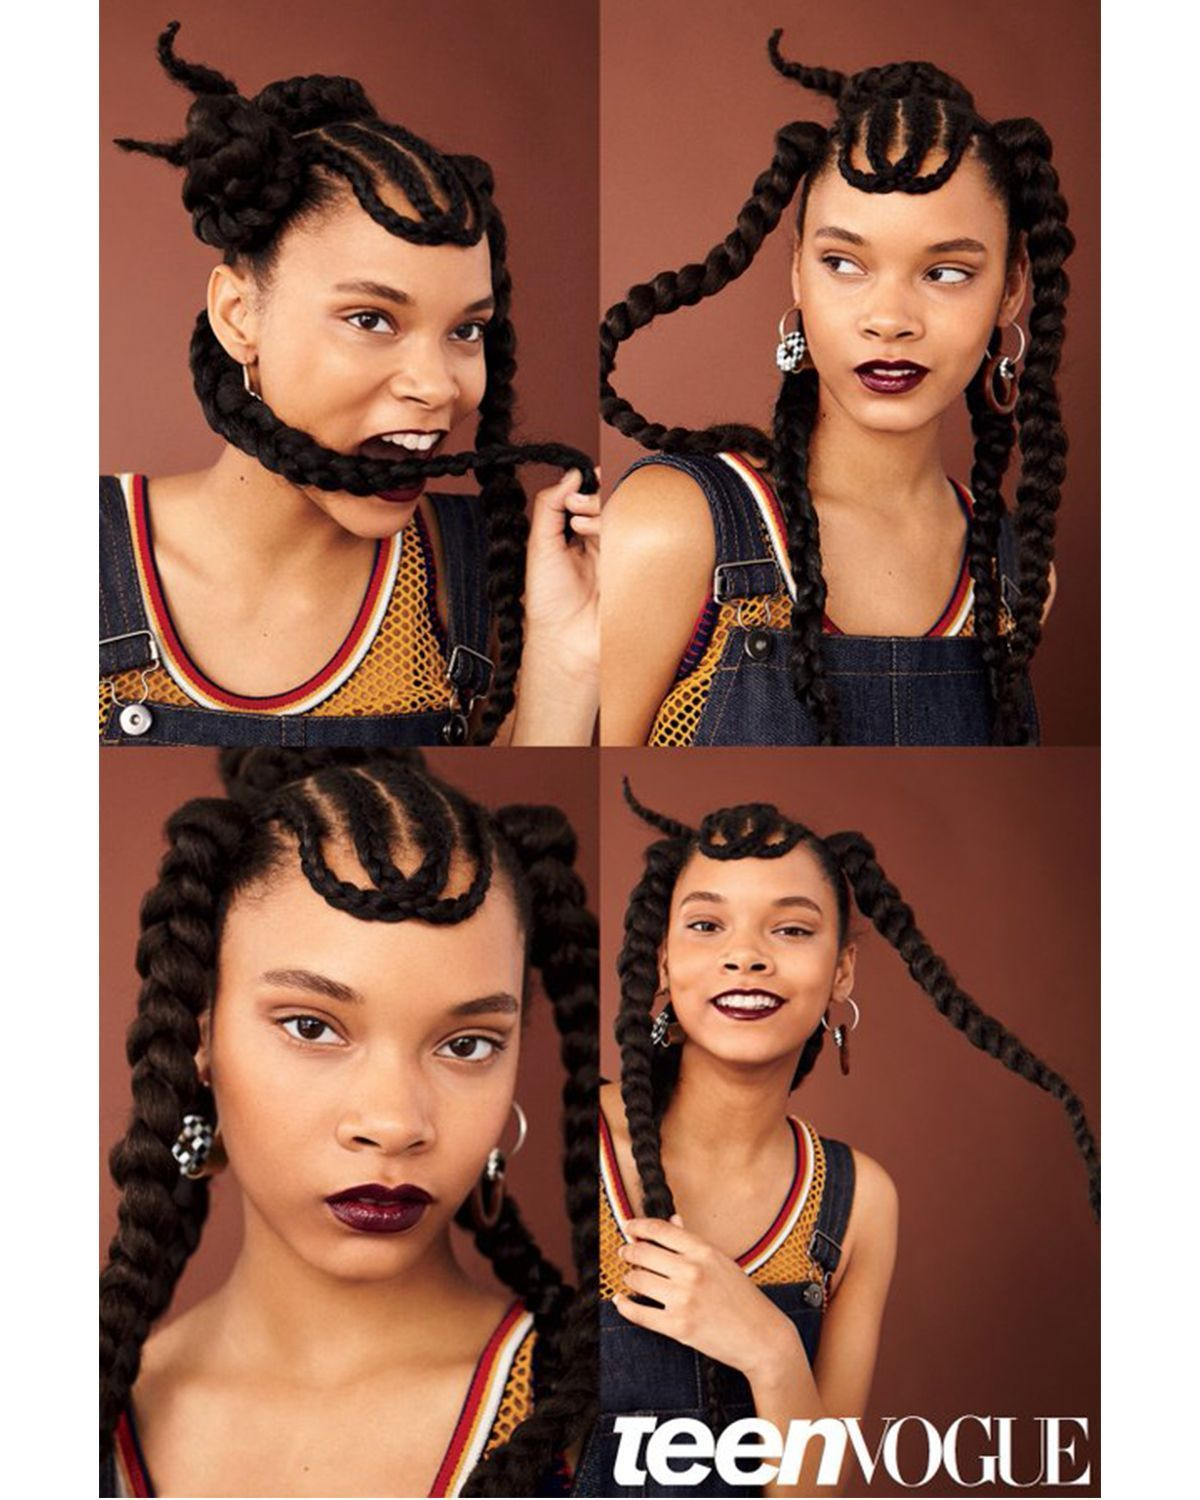 Beauty looks pretty damn fine when its not appropriated. by @teenvogue #feminism #culturalappropriation #blm #style #fashion #dreadlocks #love